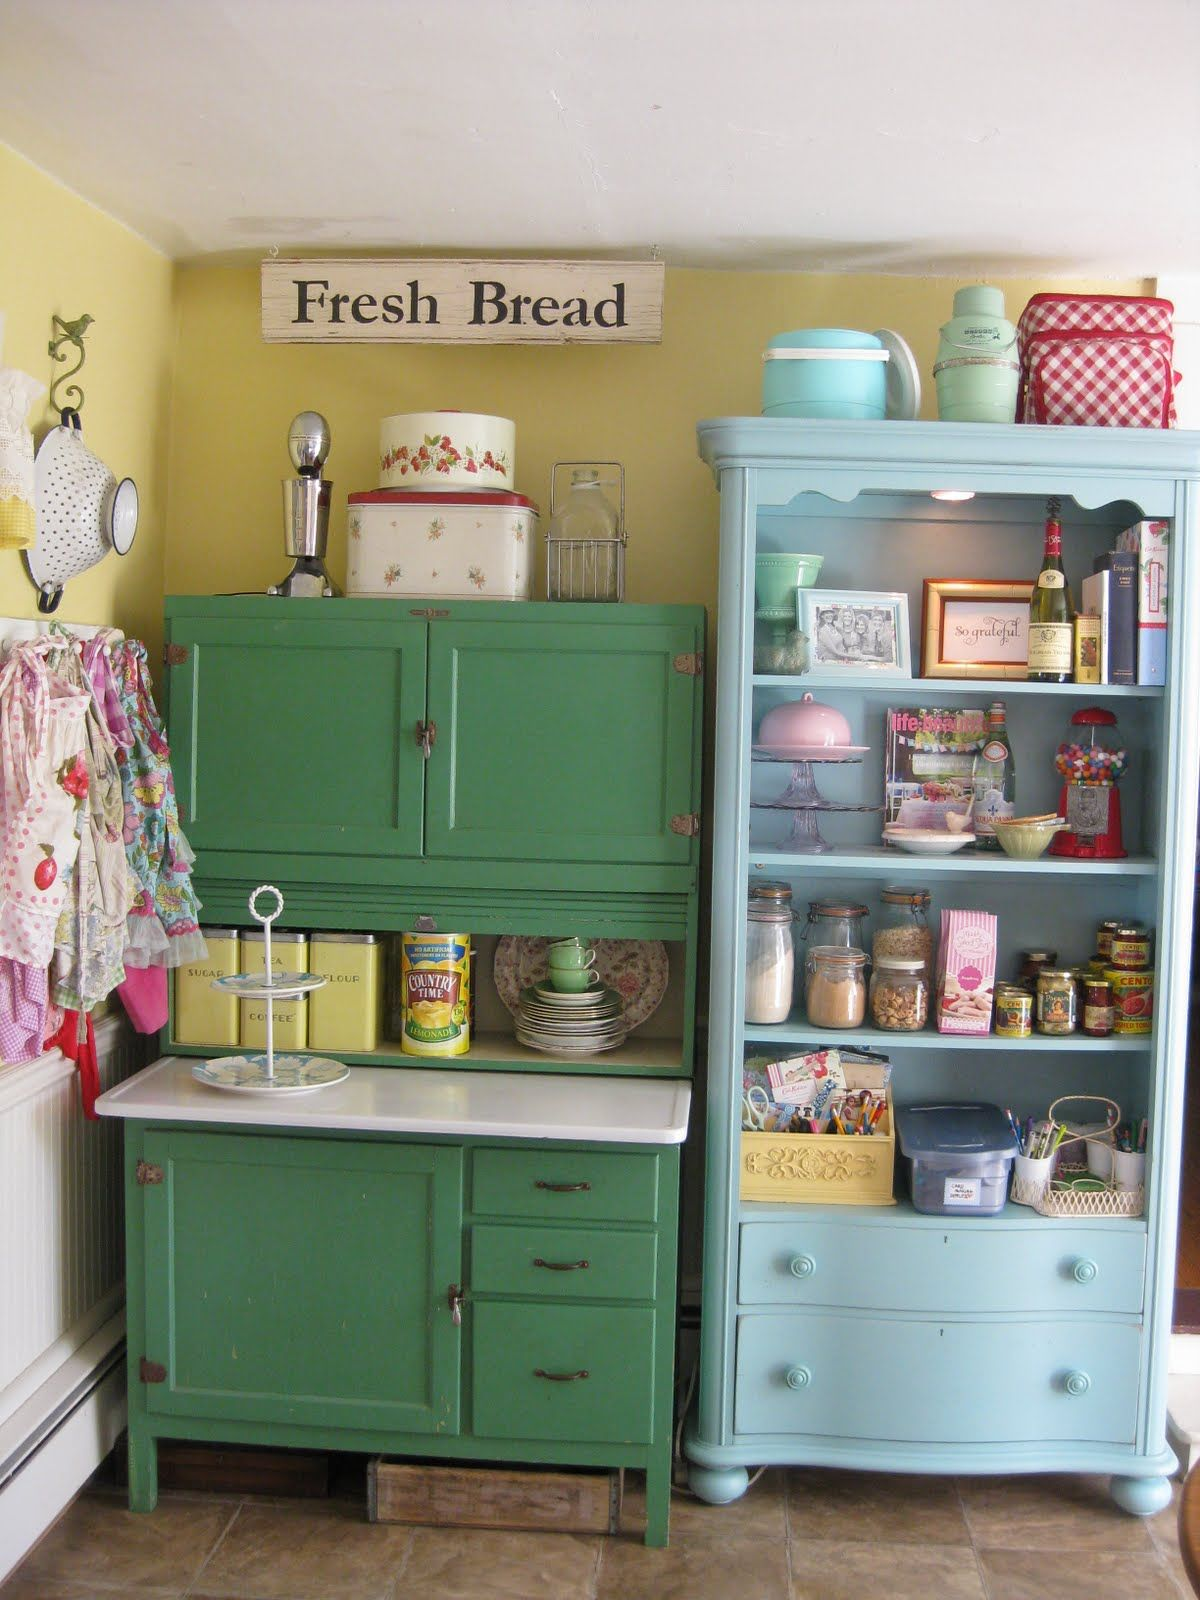 Colorful vintage kitchen storage ideas pictures photos for Kitchen ideas vintage